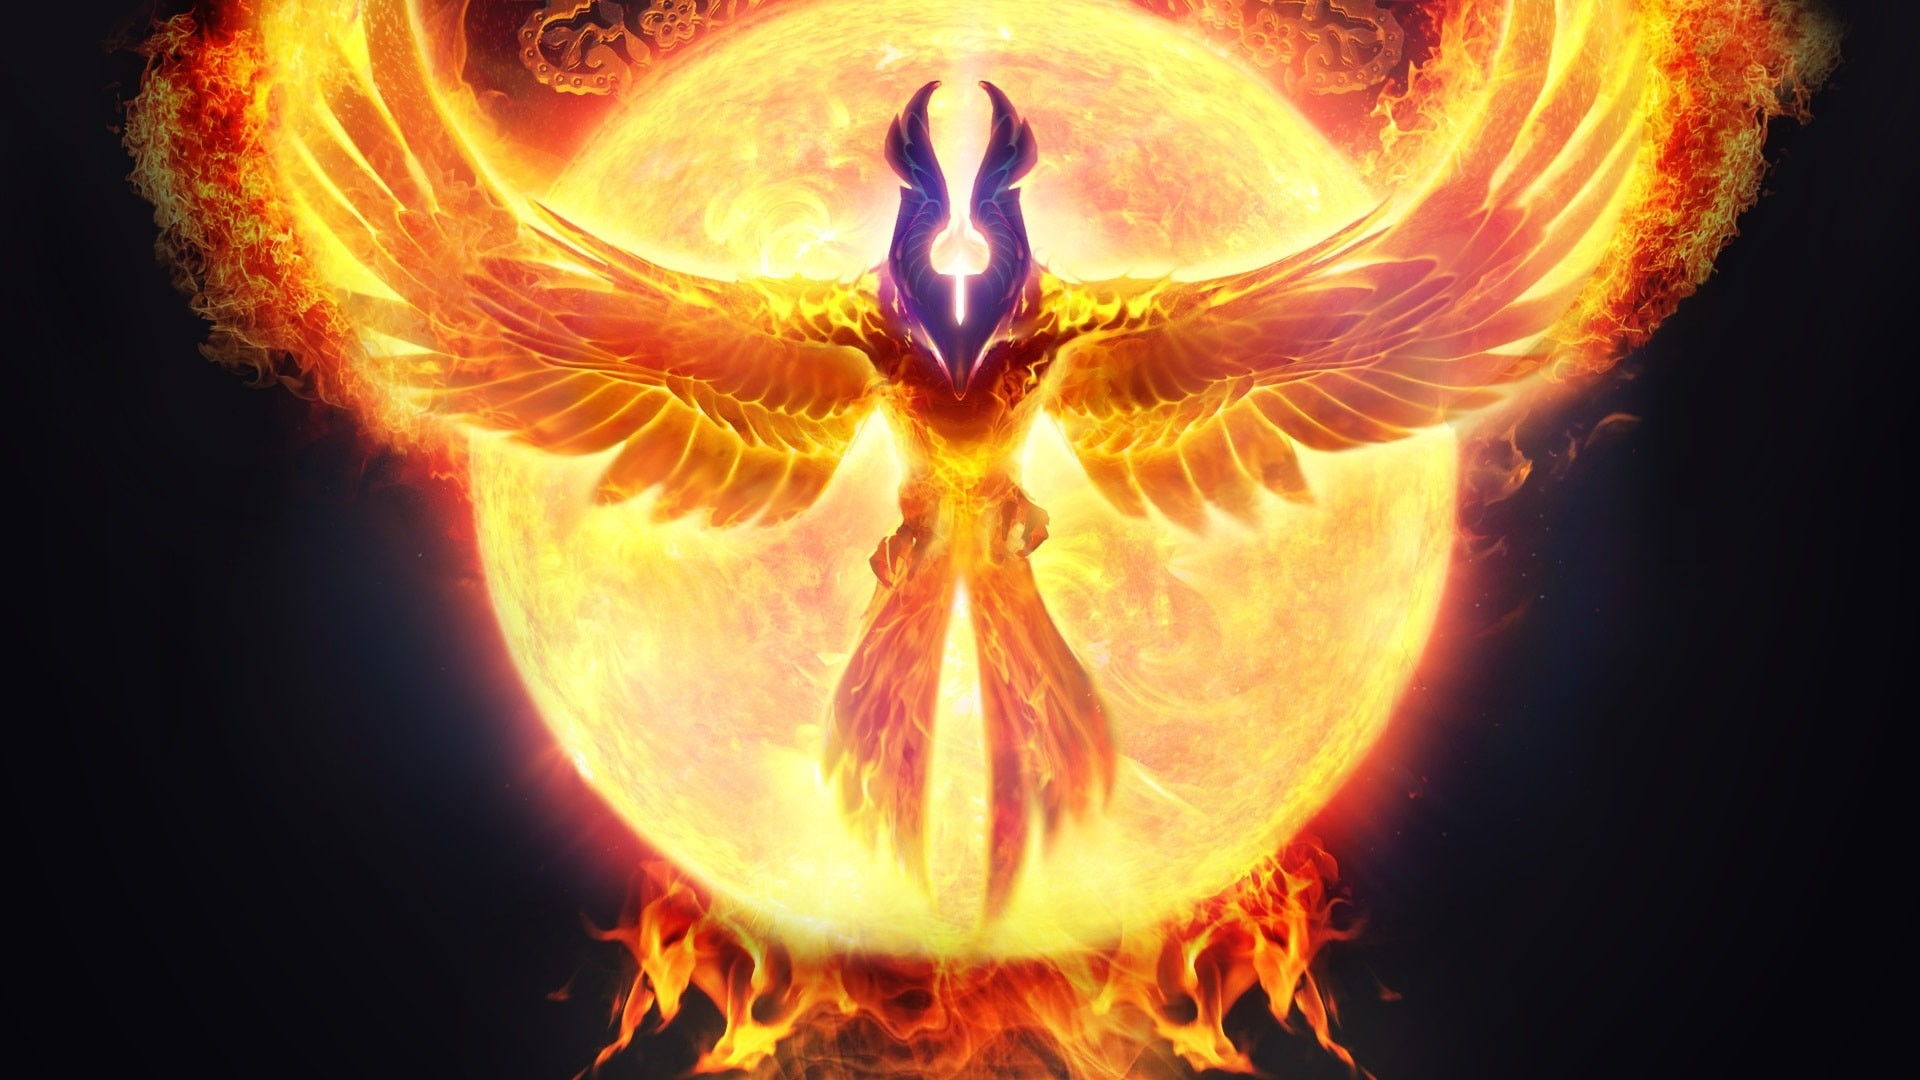 Phoenix Wallpaper HD (80+ images)